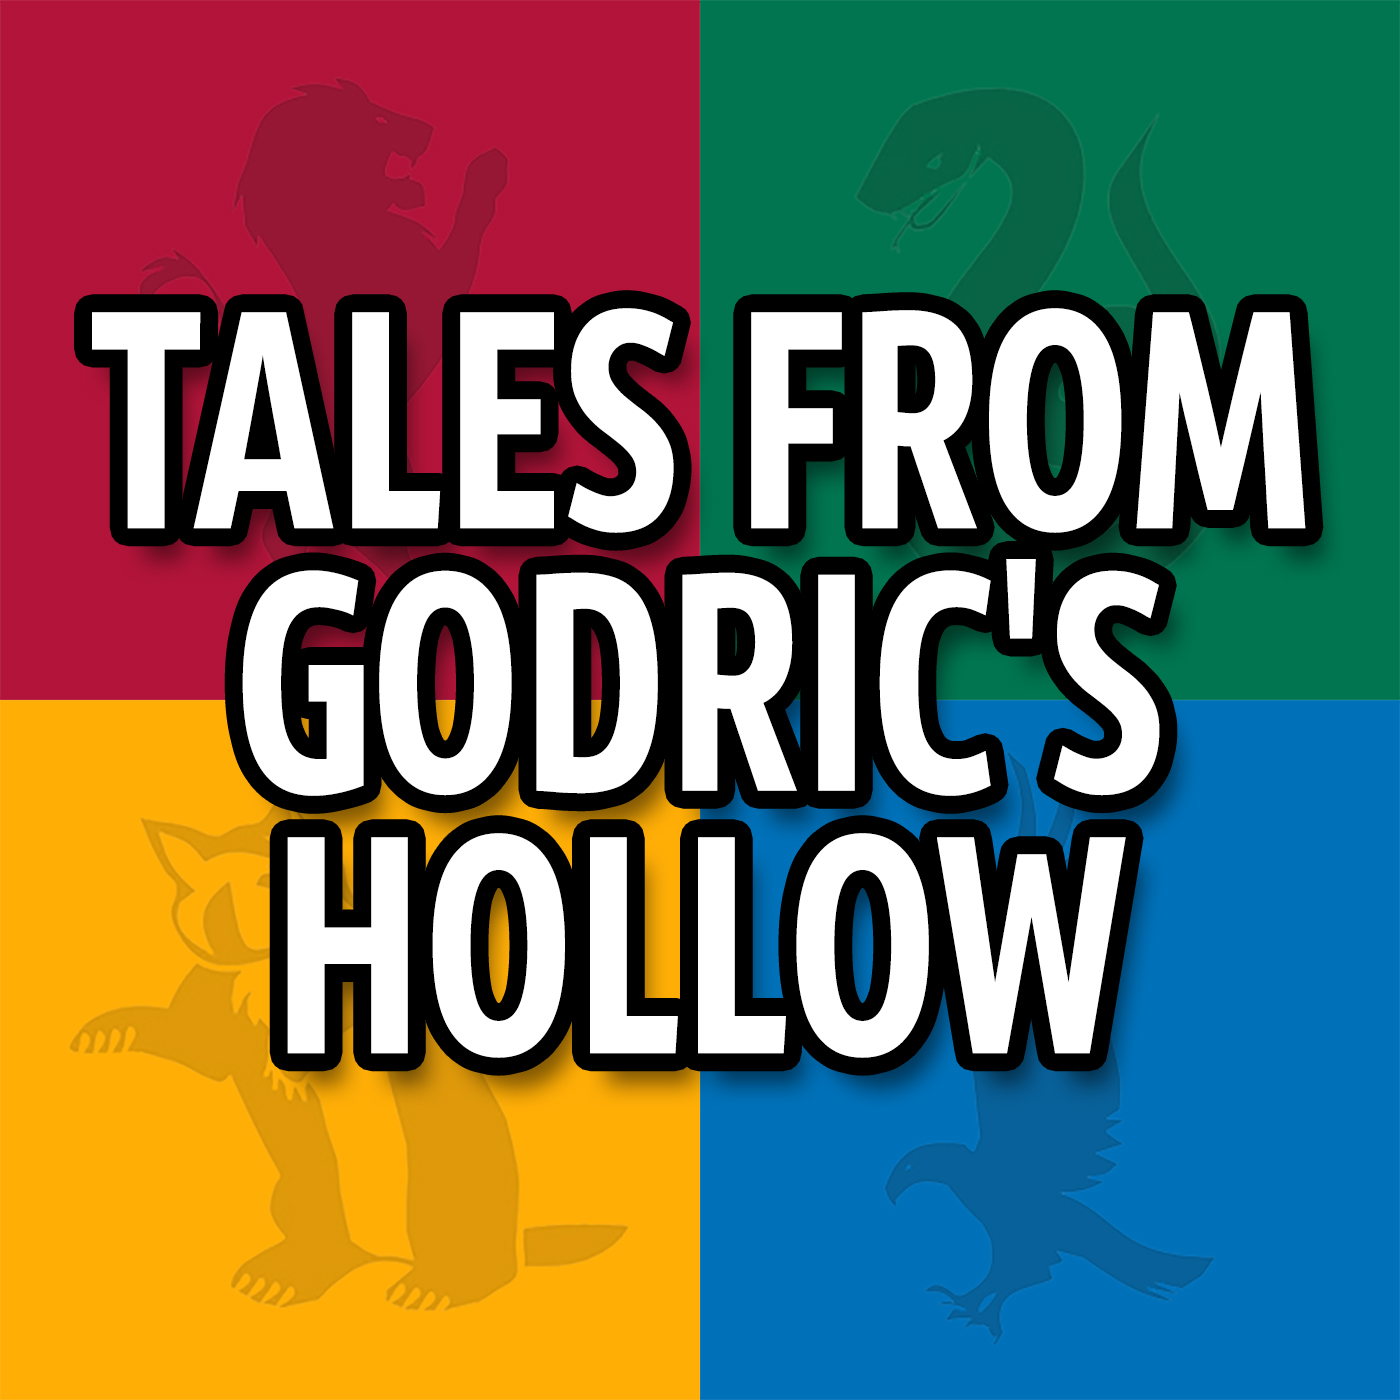 Tales from Godric's Hollow - Discussing Harry Potter Books, Movies, and News show art